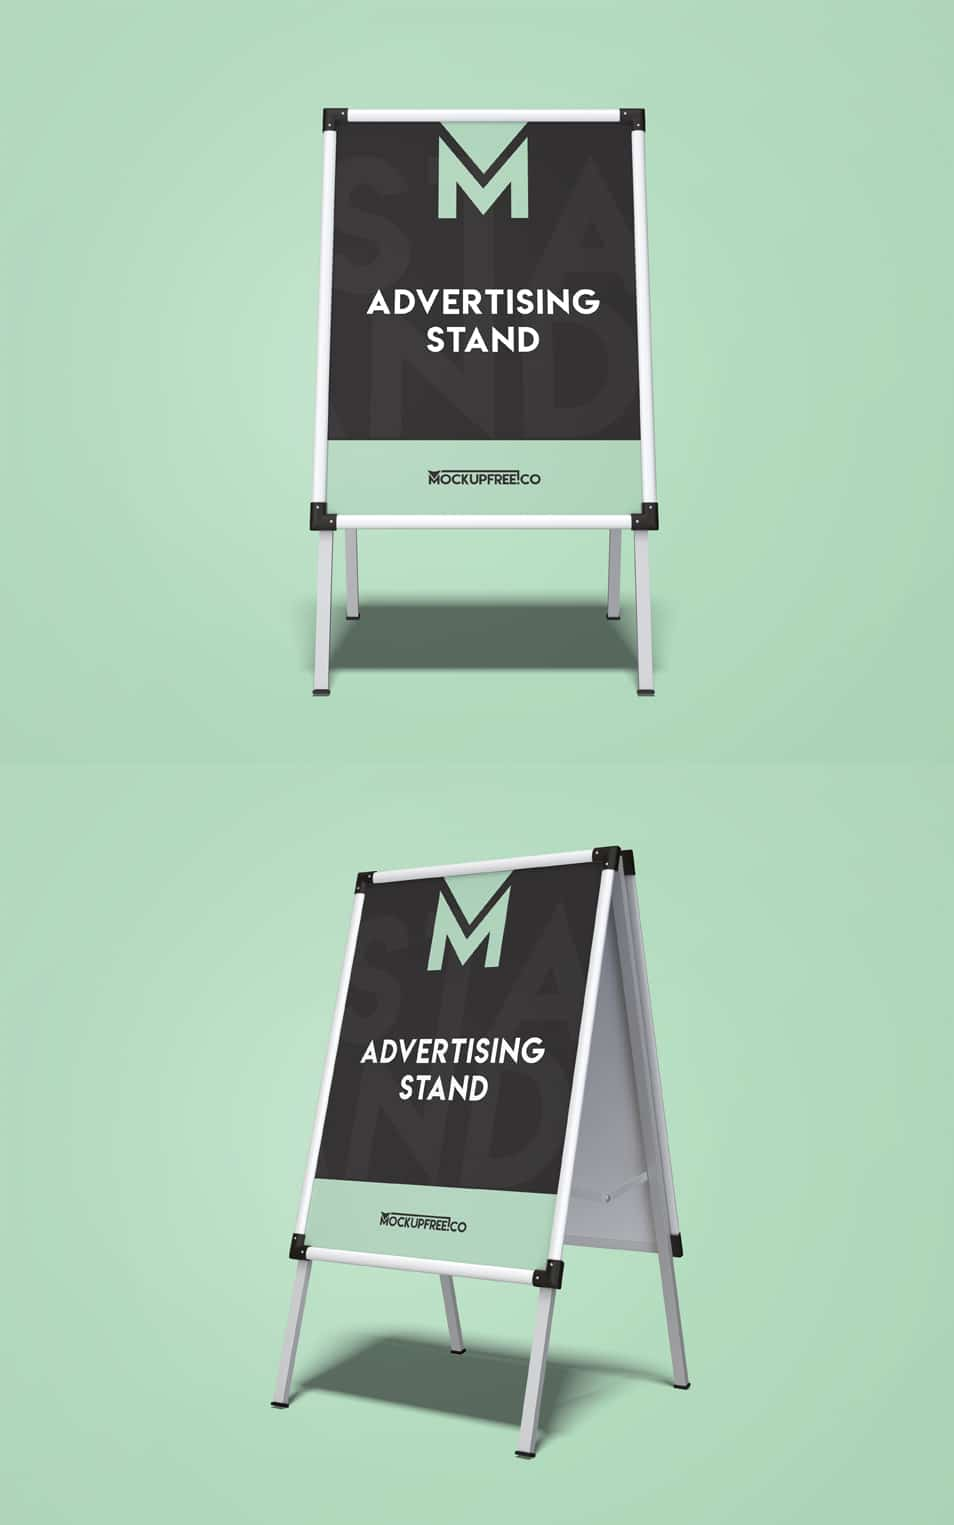 Advertising Stand 2 Free PSD Mockups